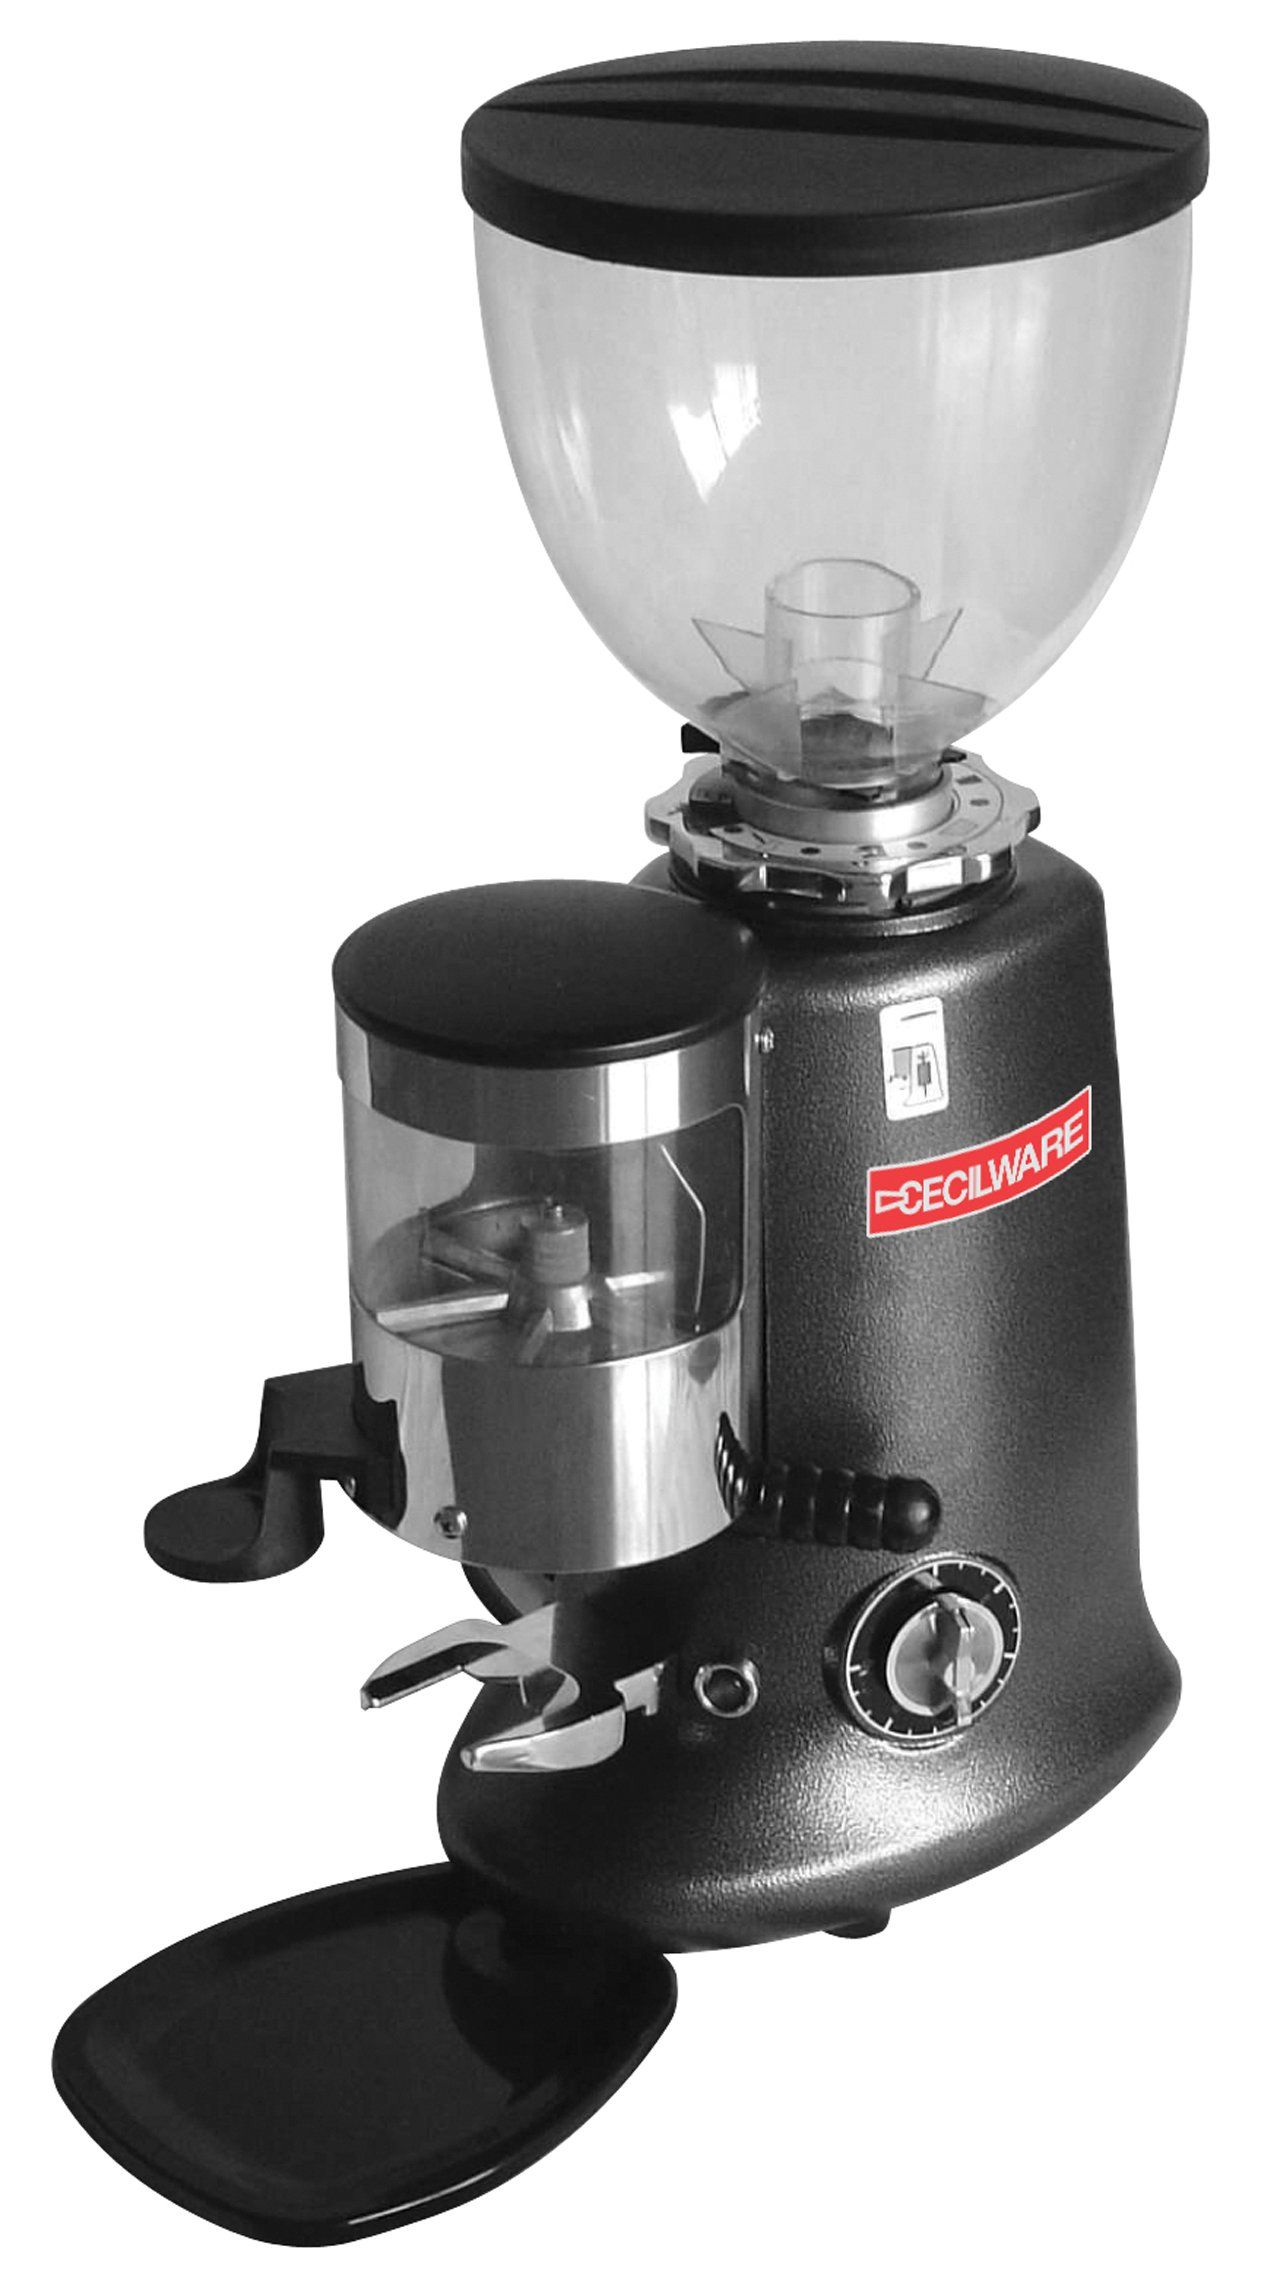 Grindmaster-Cecilware HC-600 Venezia II Espresso Grinder with Manual Timer, Grey and Stainless Steel